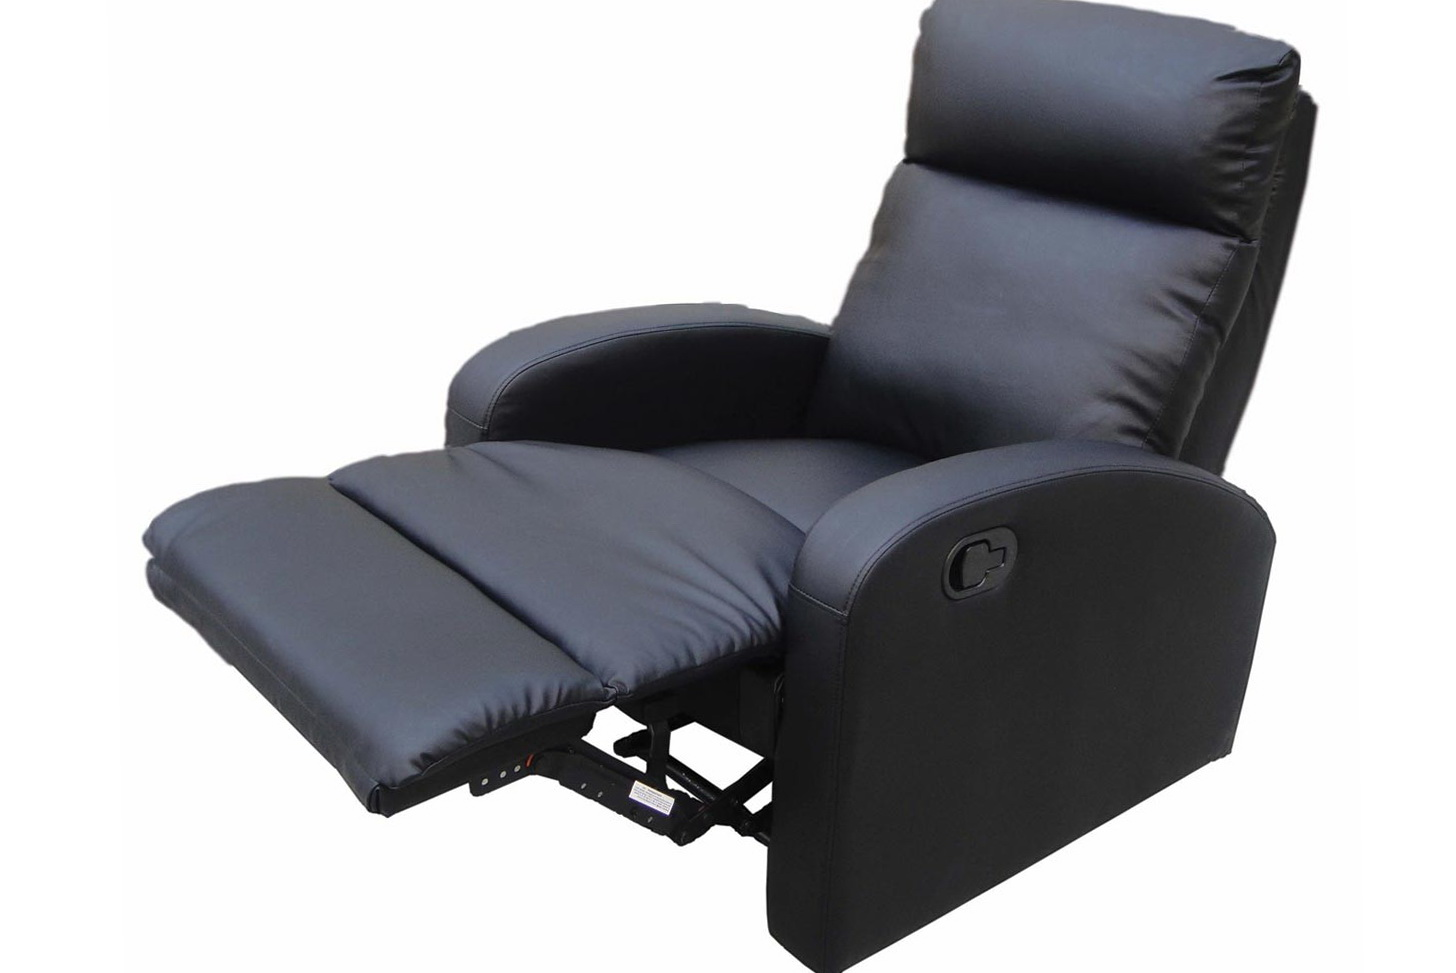 Black Leather Recliner Chairs